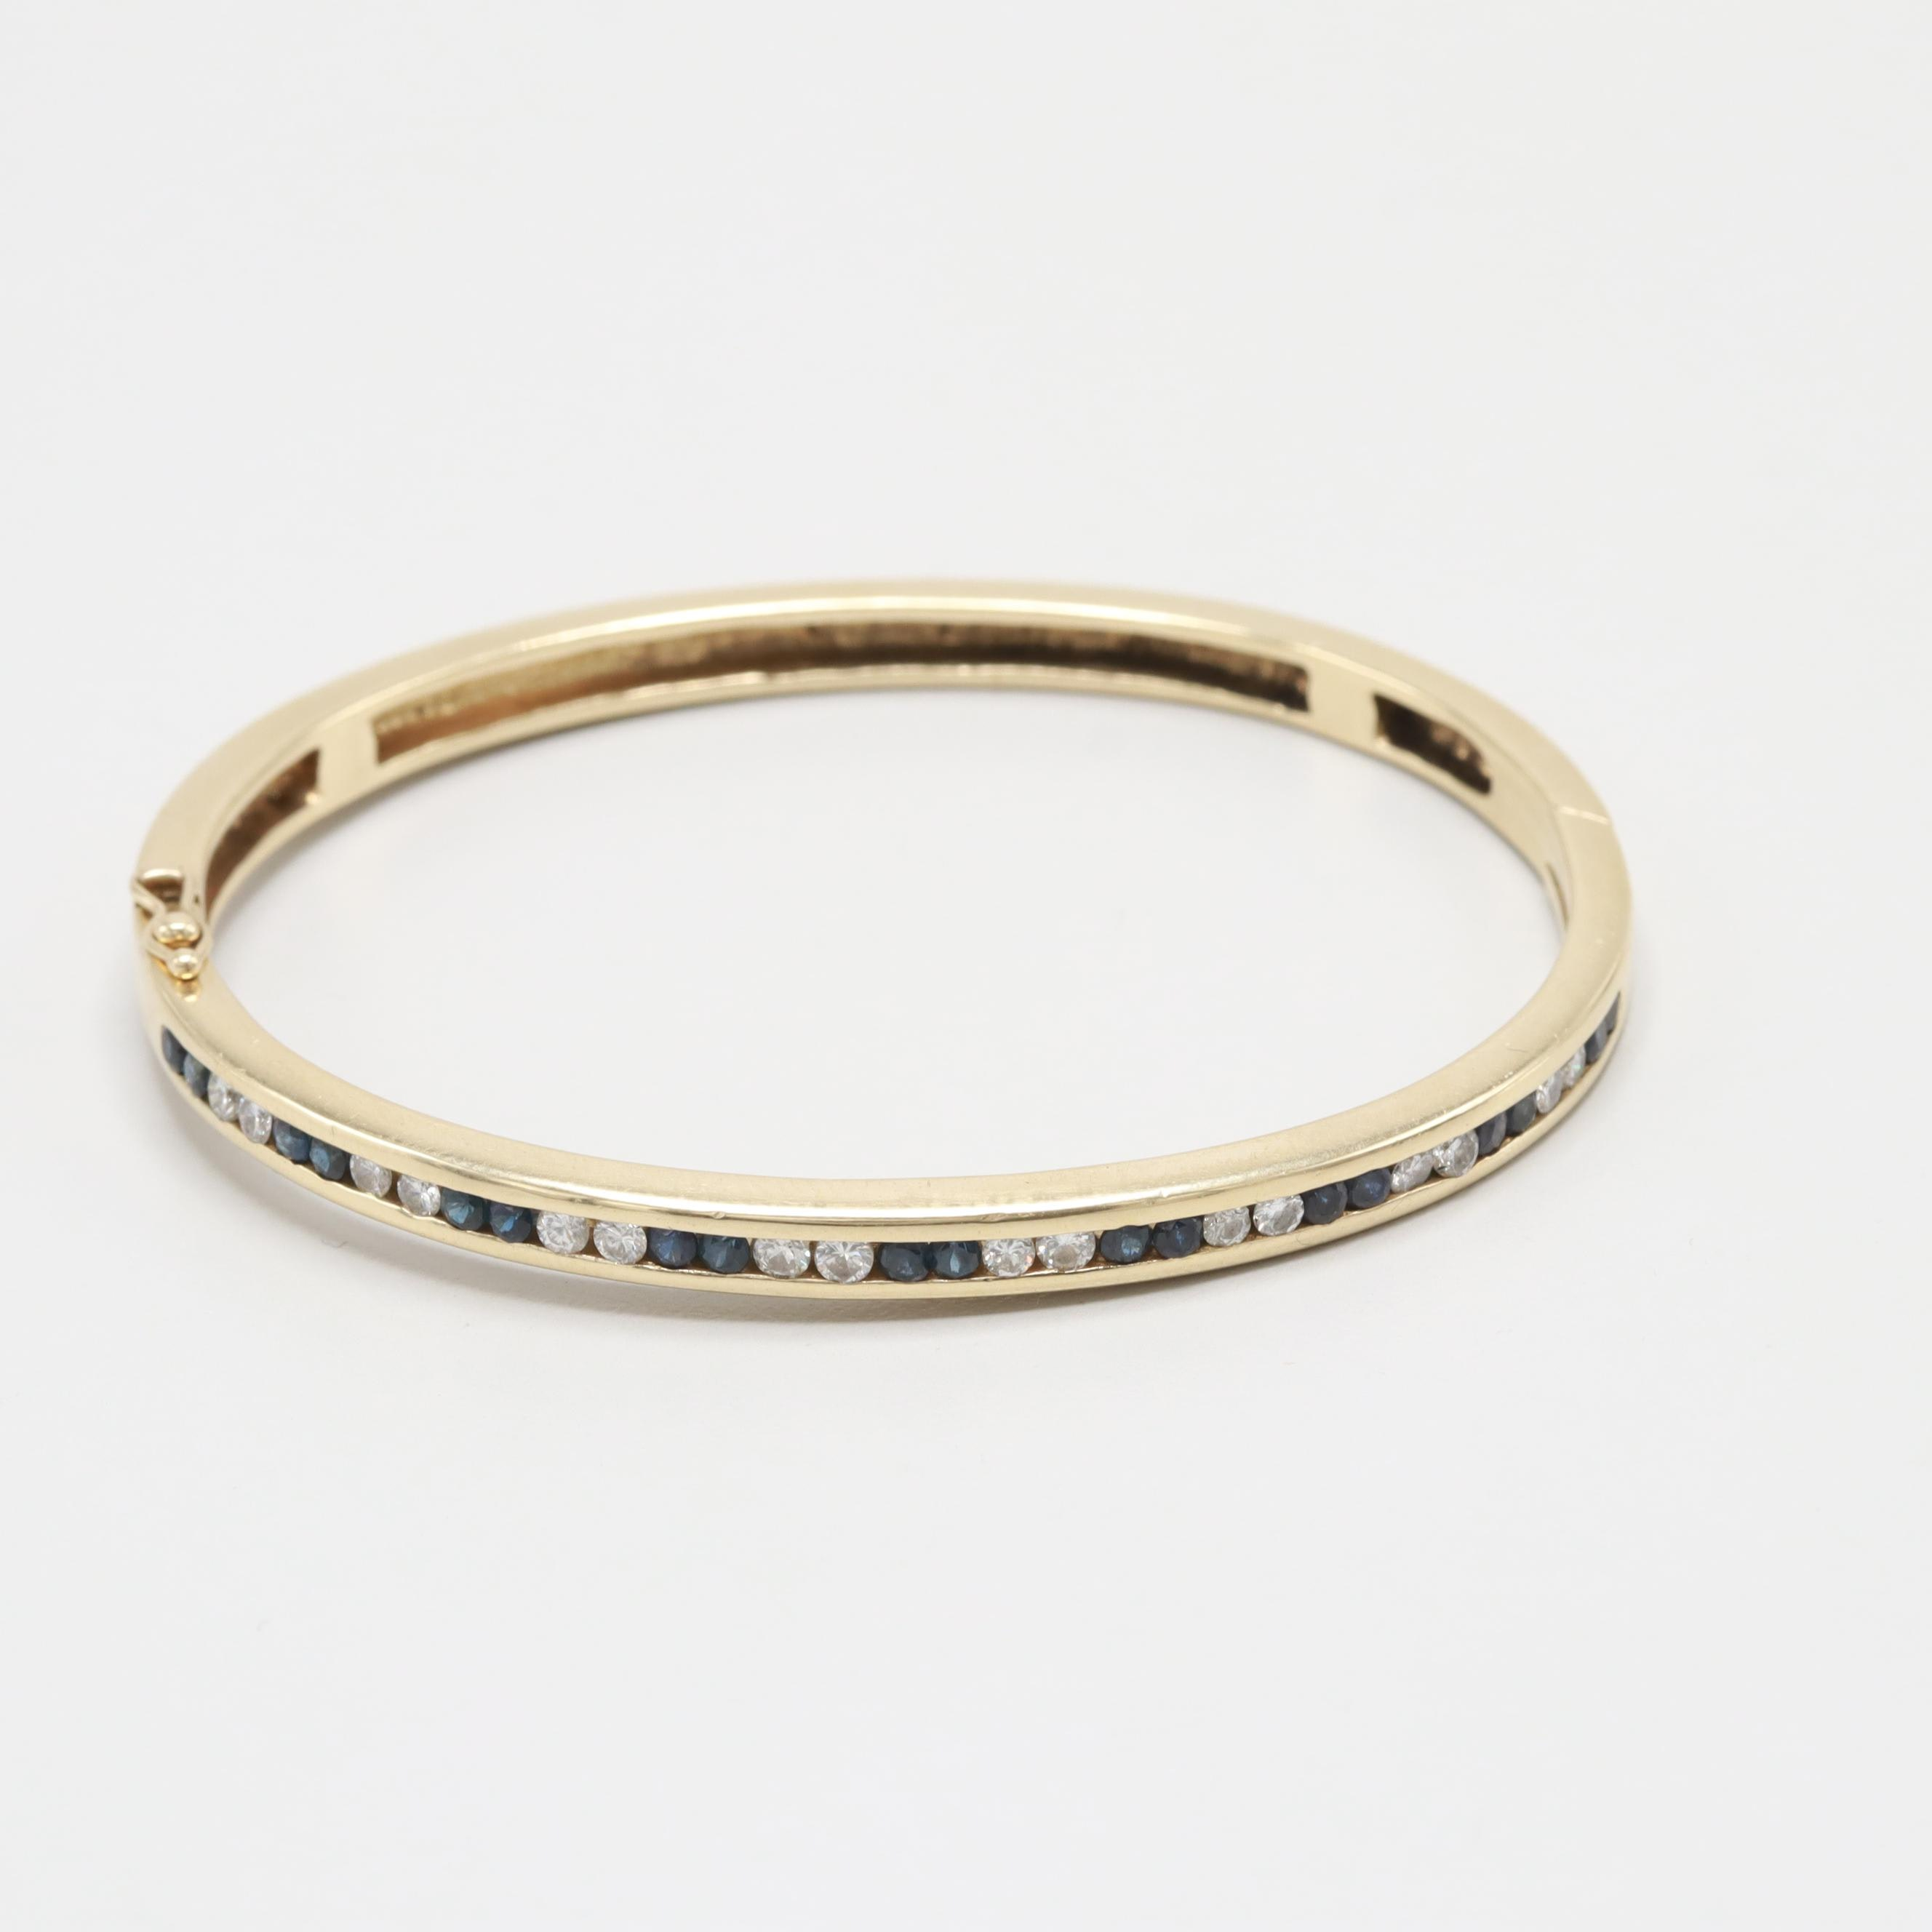 14K Yellow Gold Diamond and Blue Sapphire Hinged Bangle Bracelet